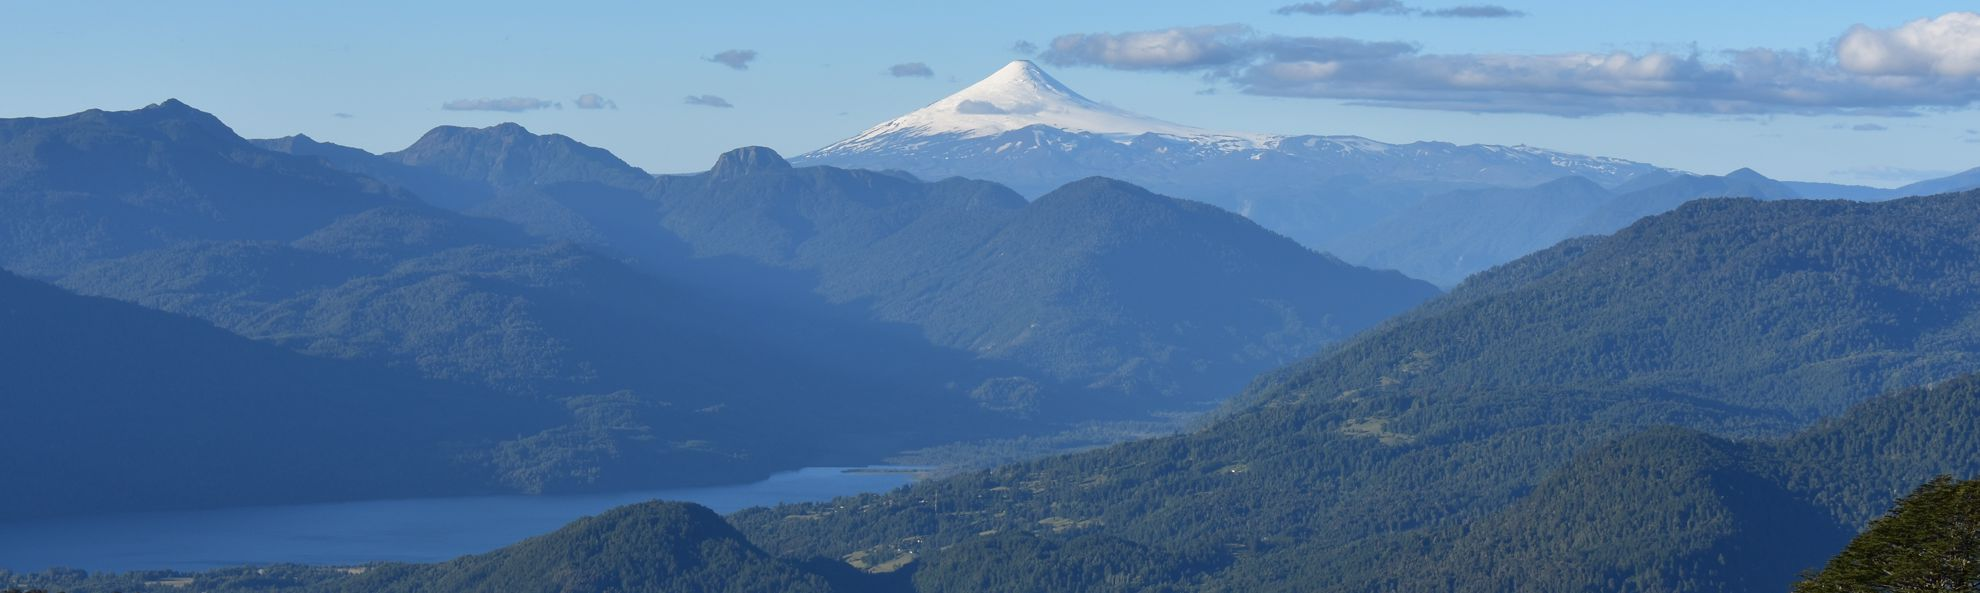 Chile's Lakes & Volcanoes